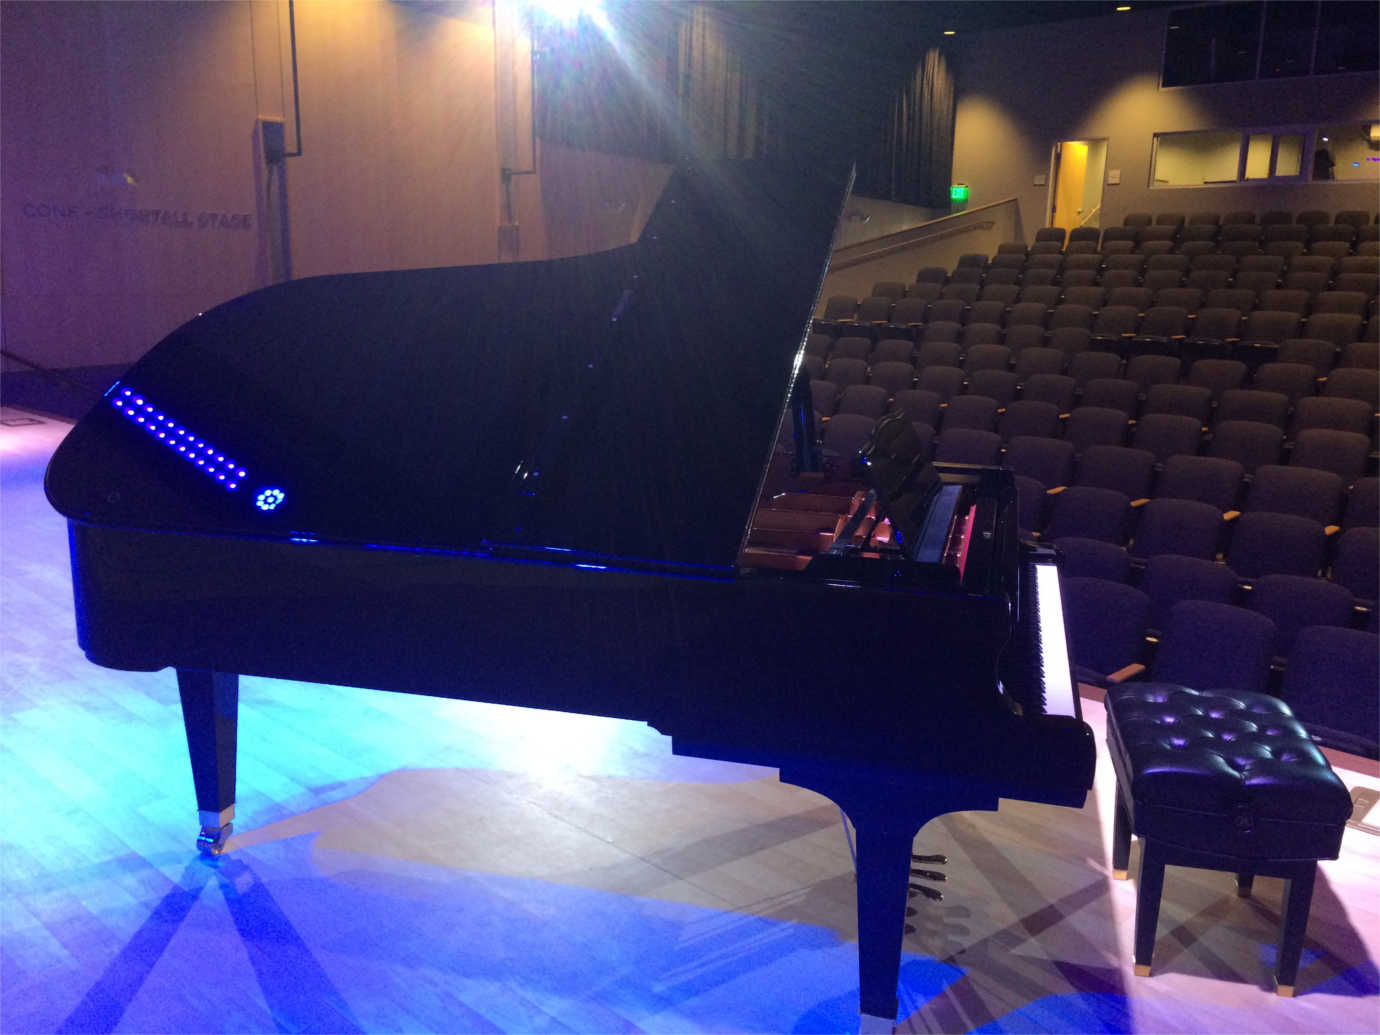 The Longmont Museum's new auditorium makes it possible for the community to host concerts. Image courtesy of the Longmont Museum.